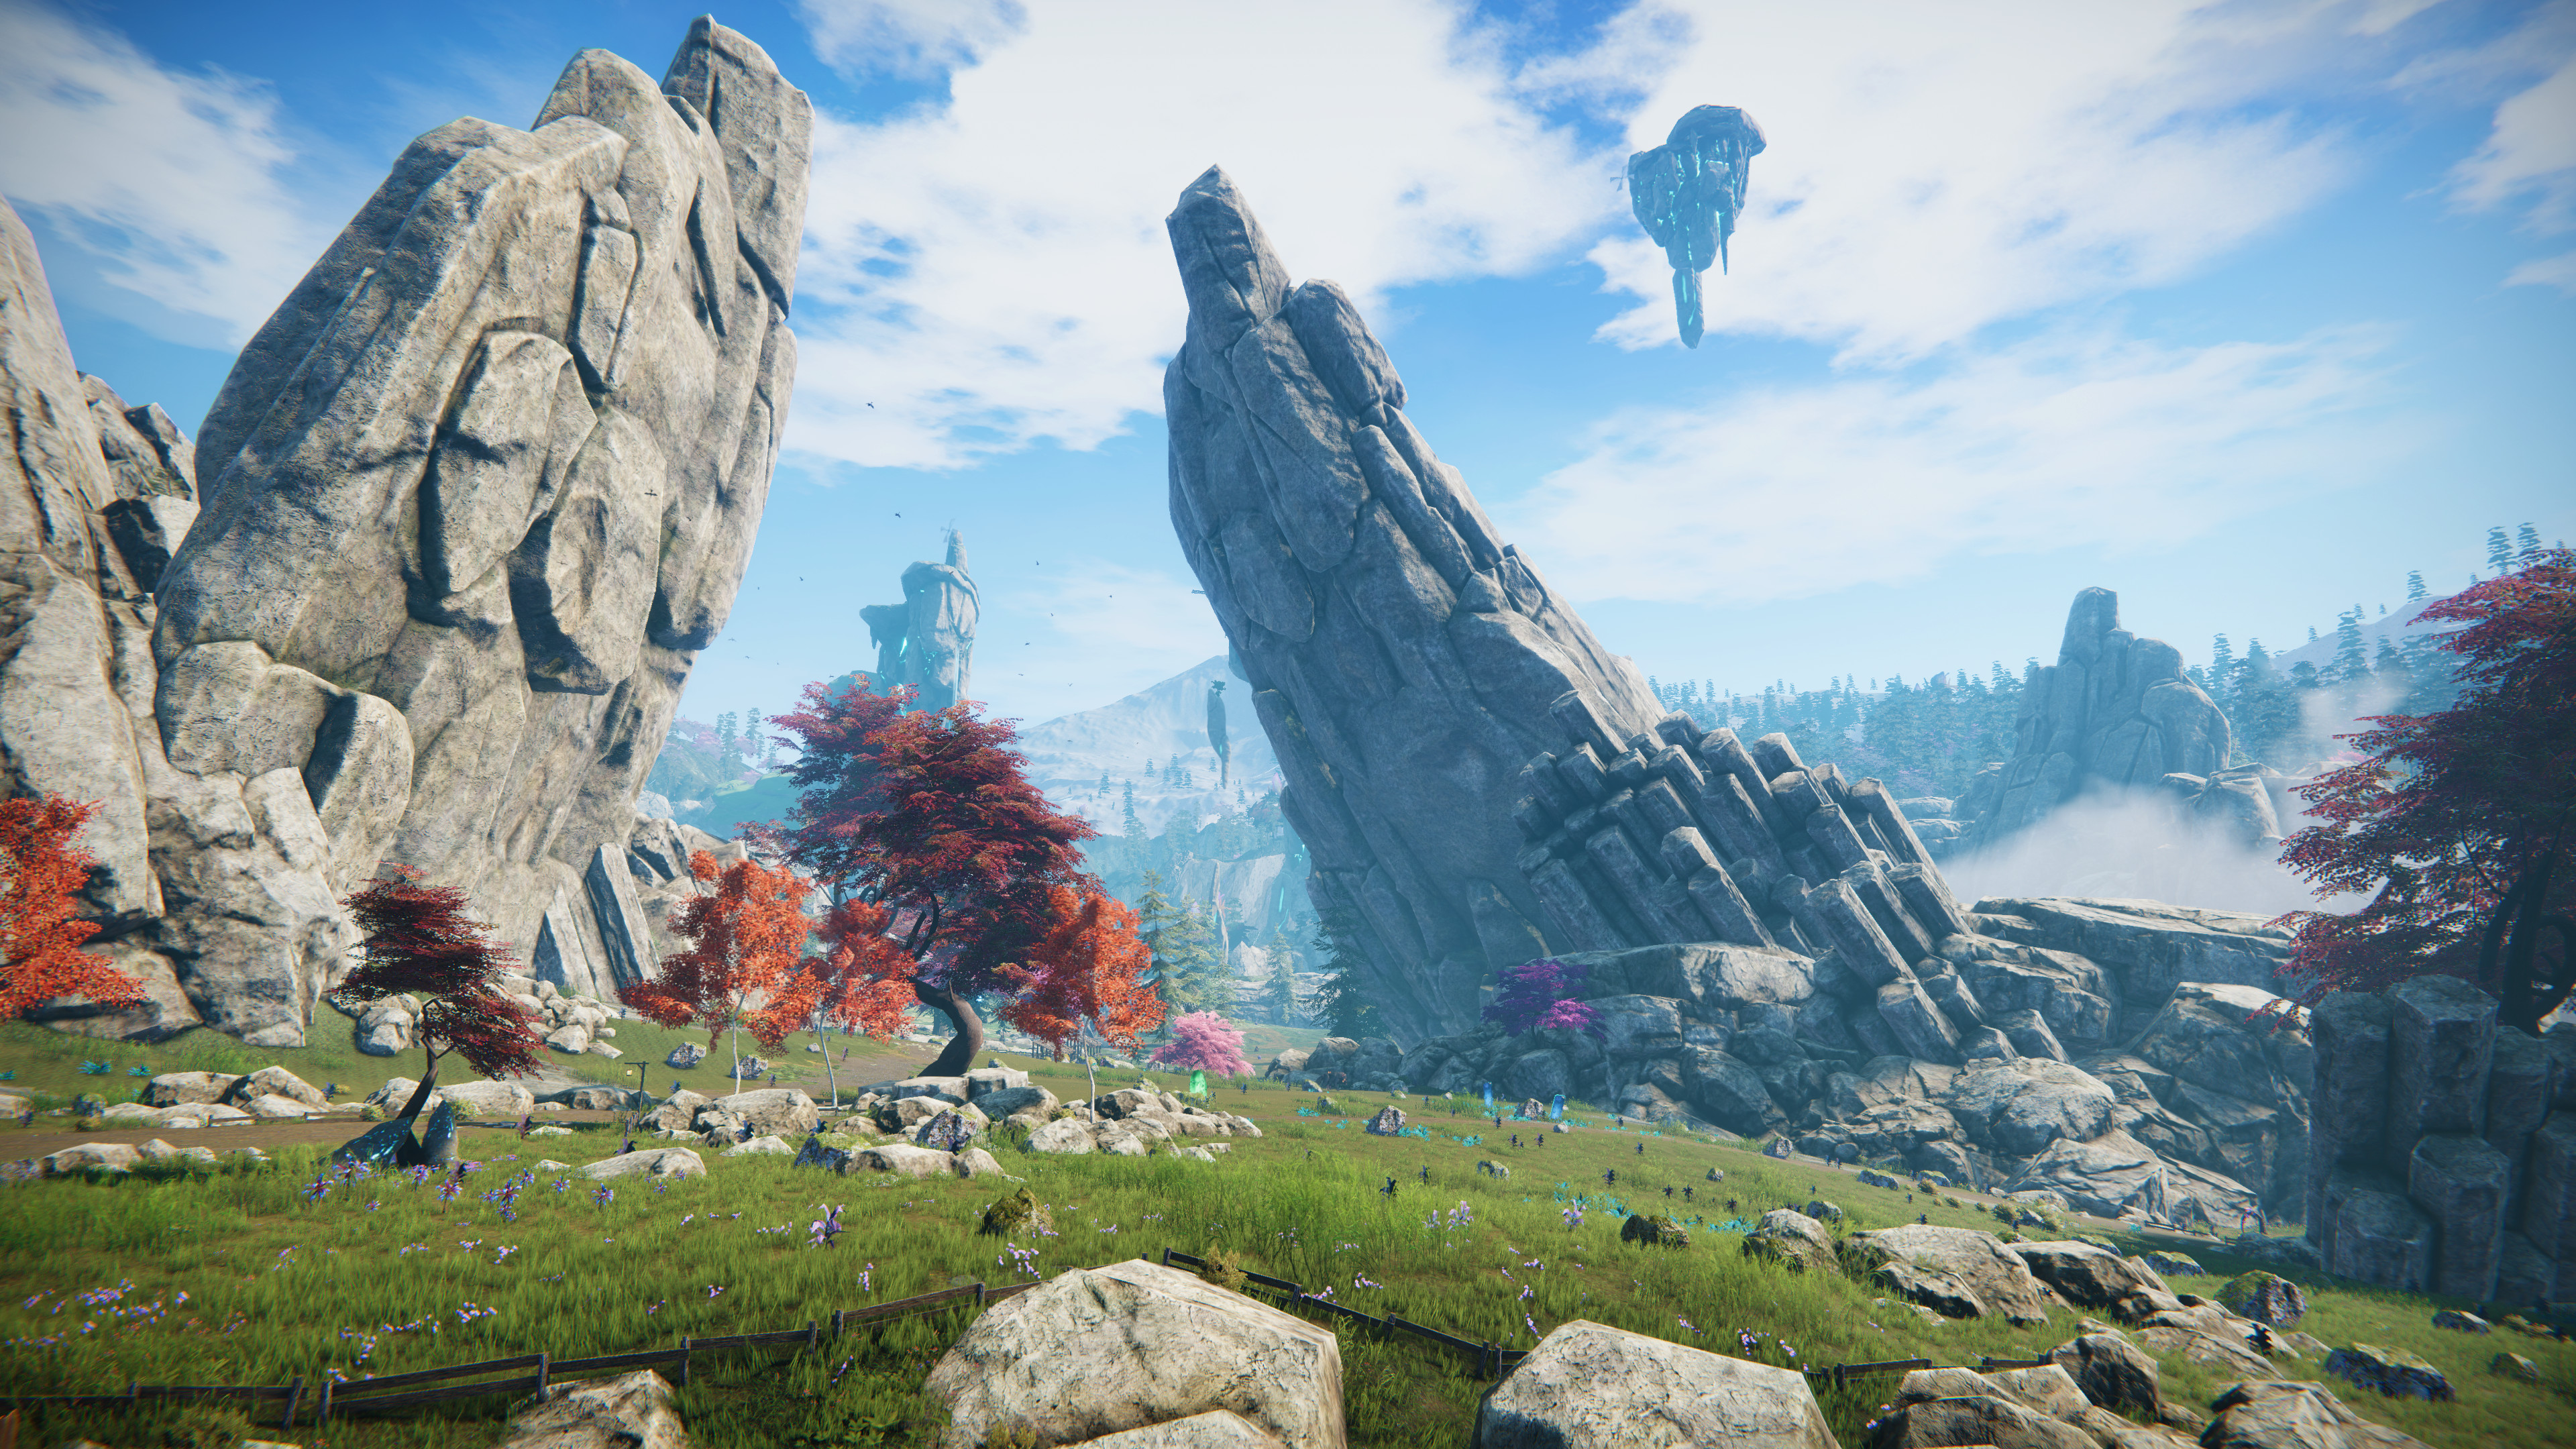 An Image from Edge of Eternity